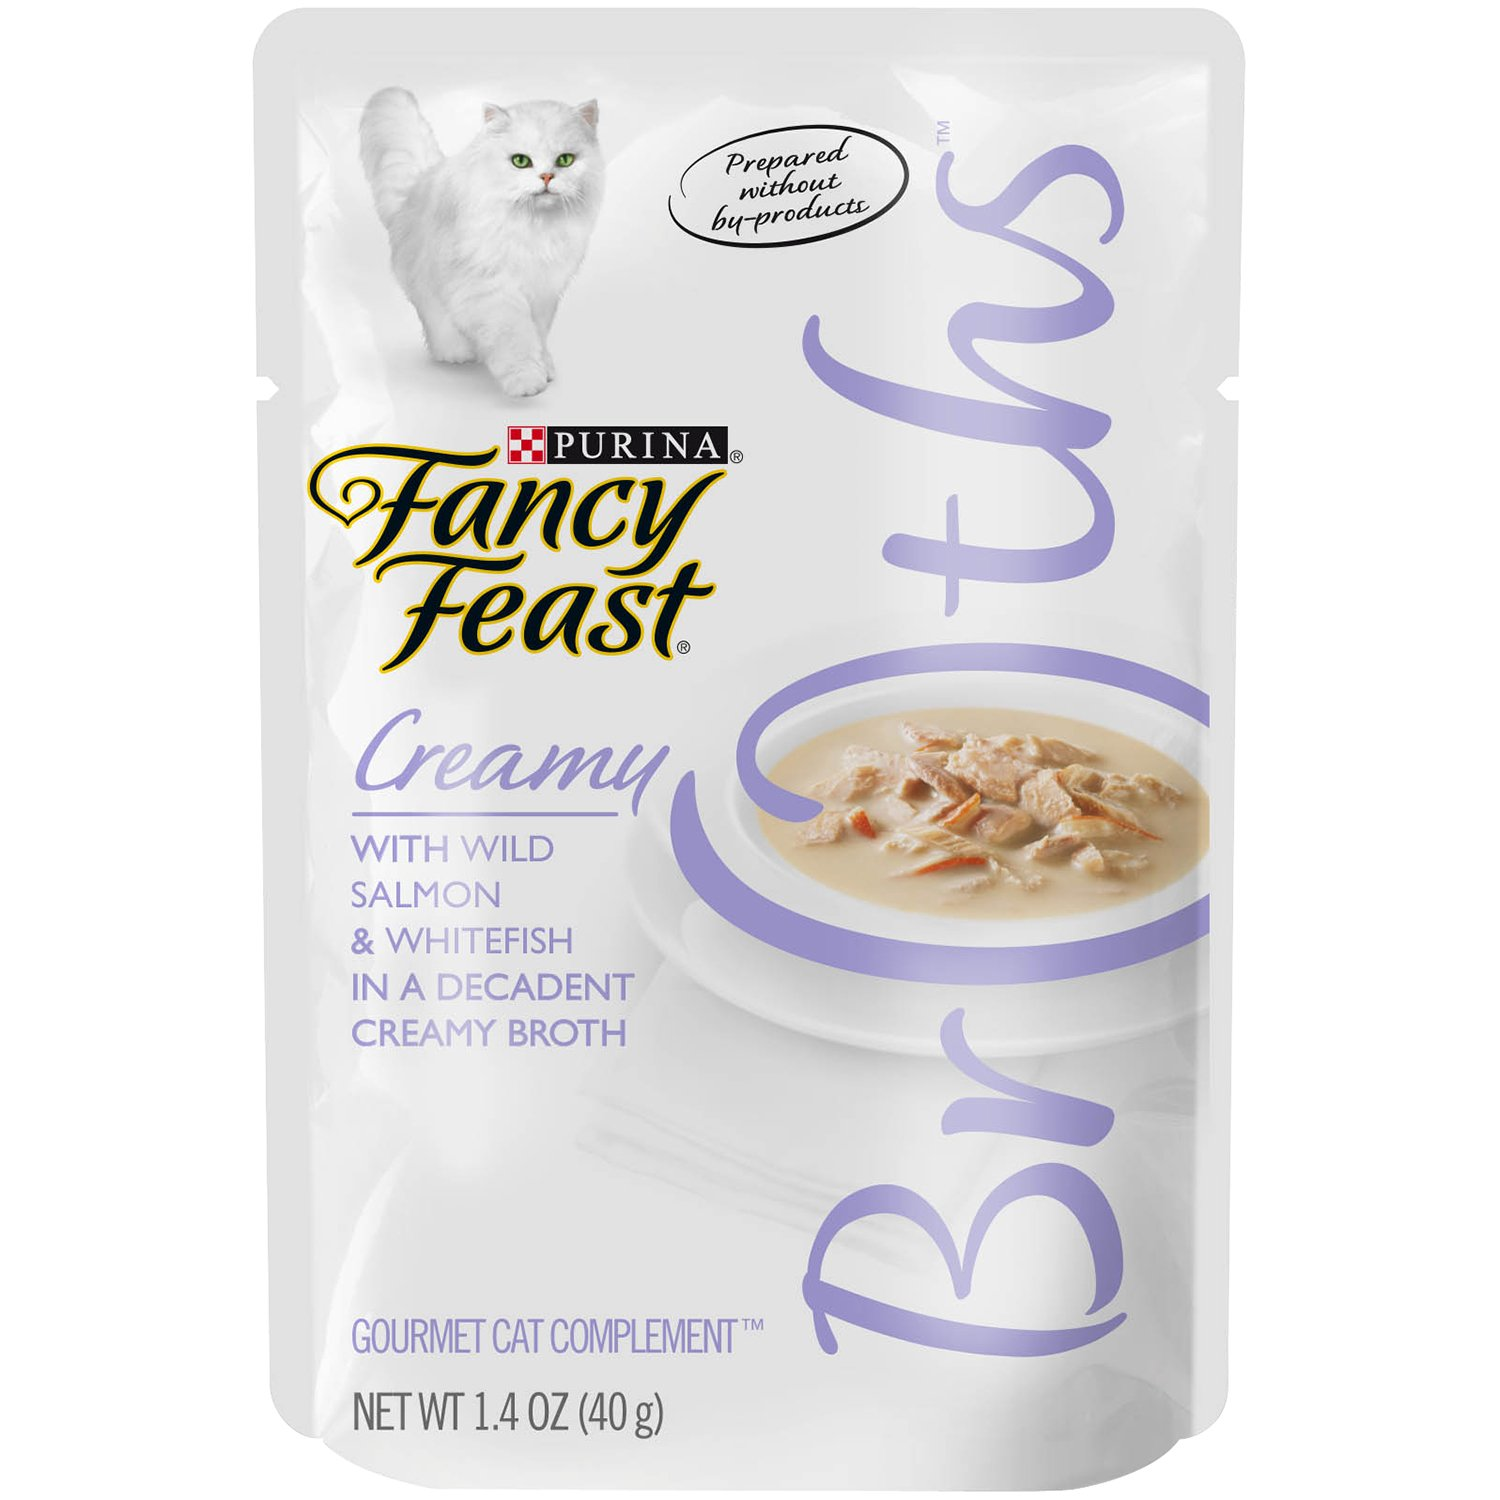 Purina Fancy Feast Broths For Cats, Creamy, With Wild Salmon And Whitefish, 1.4-Ounce Pouch, Pack Of 32 by Purina Fancy Feast